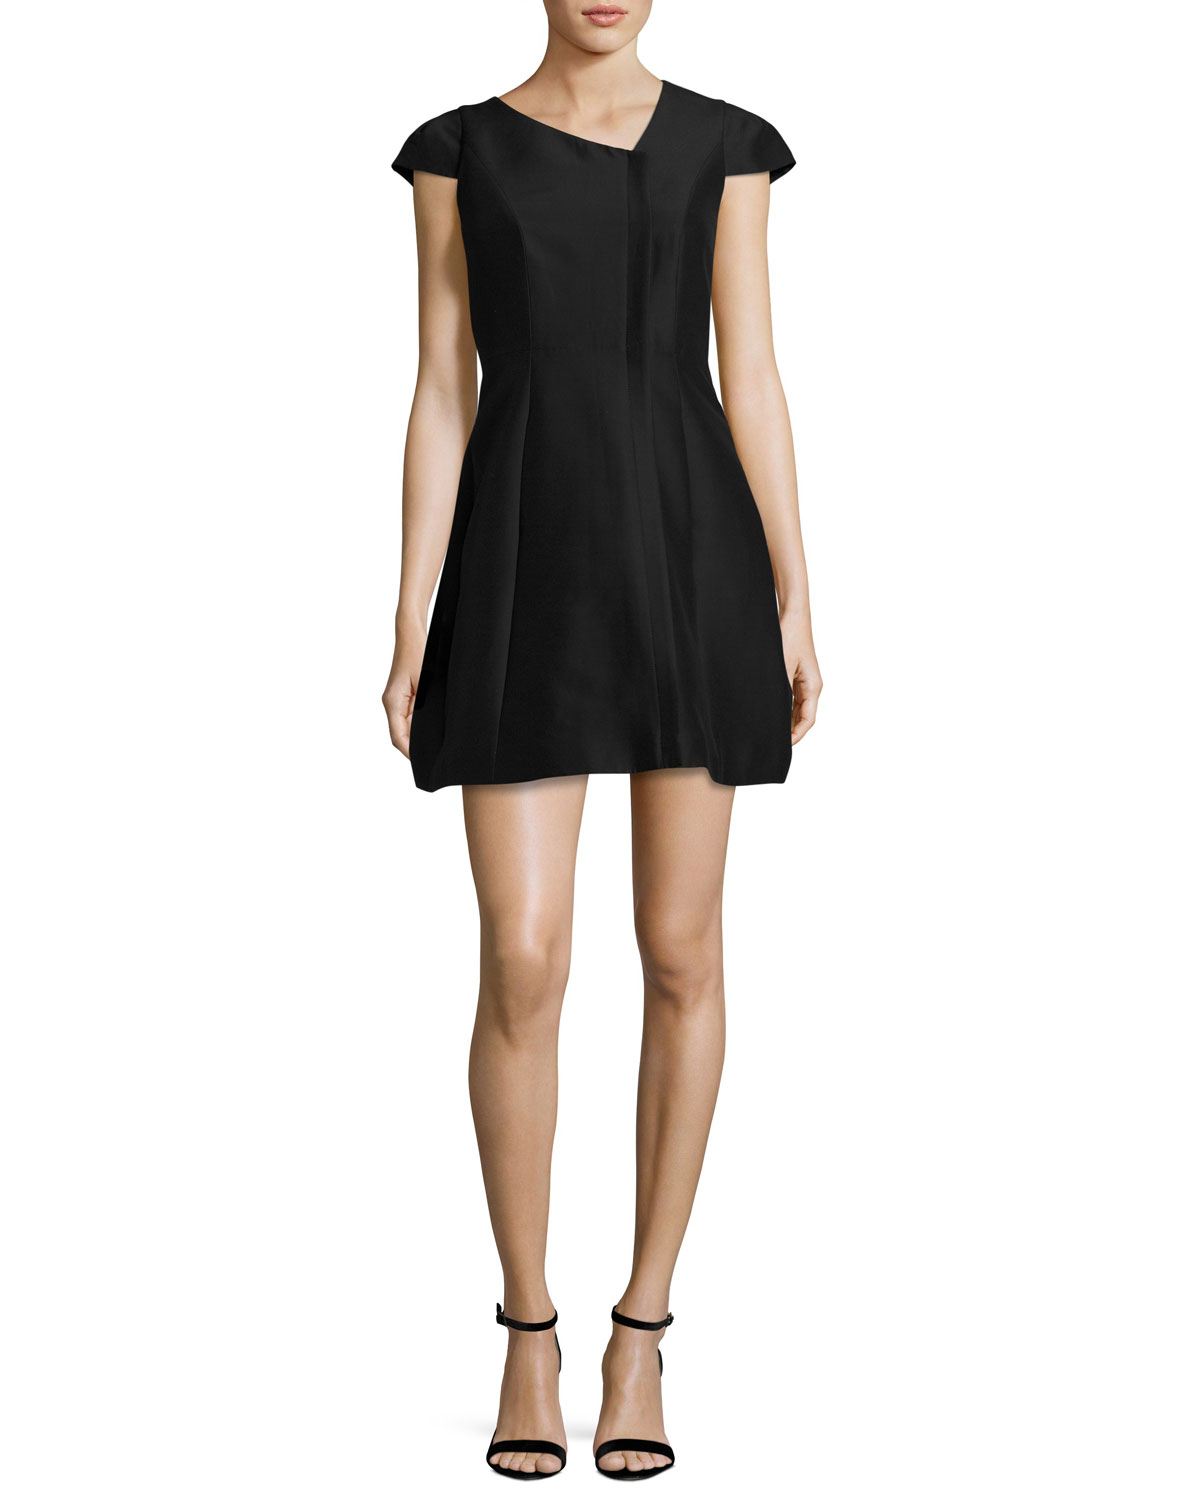 Cap-Sleeve Faille Cocktail Dress, Black